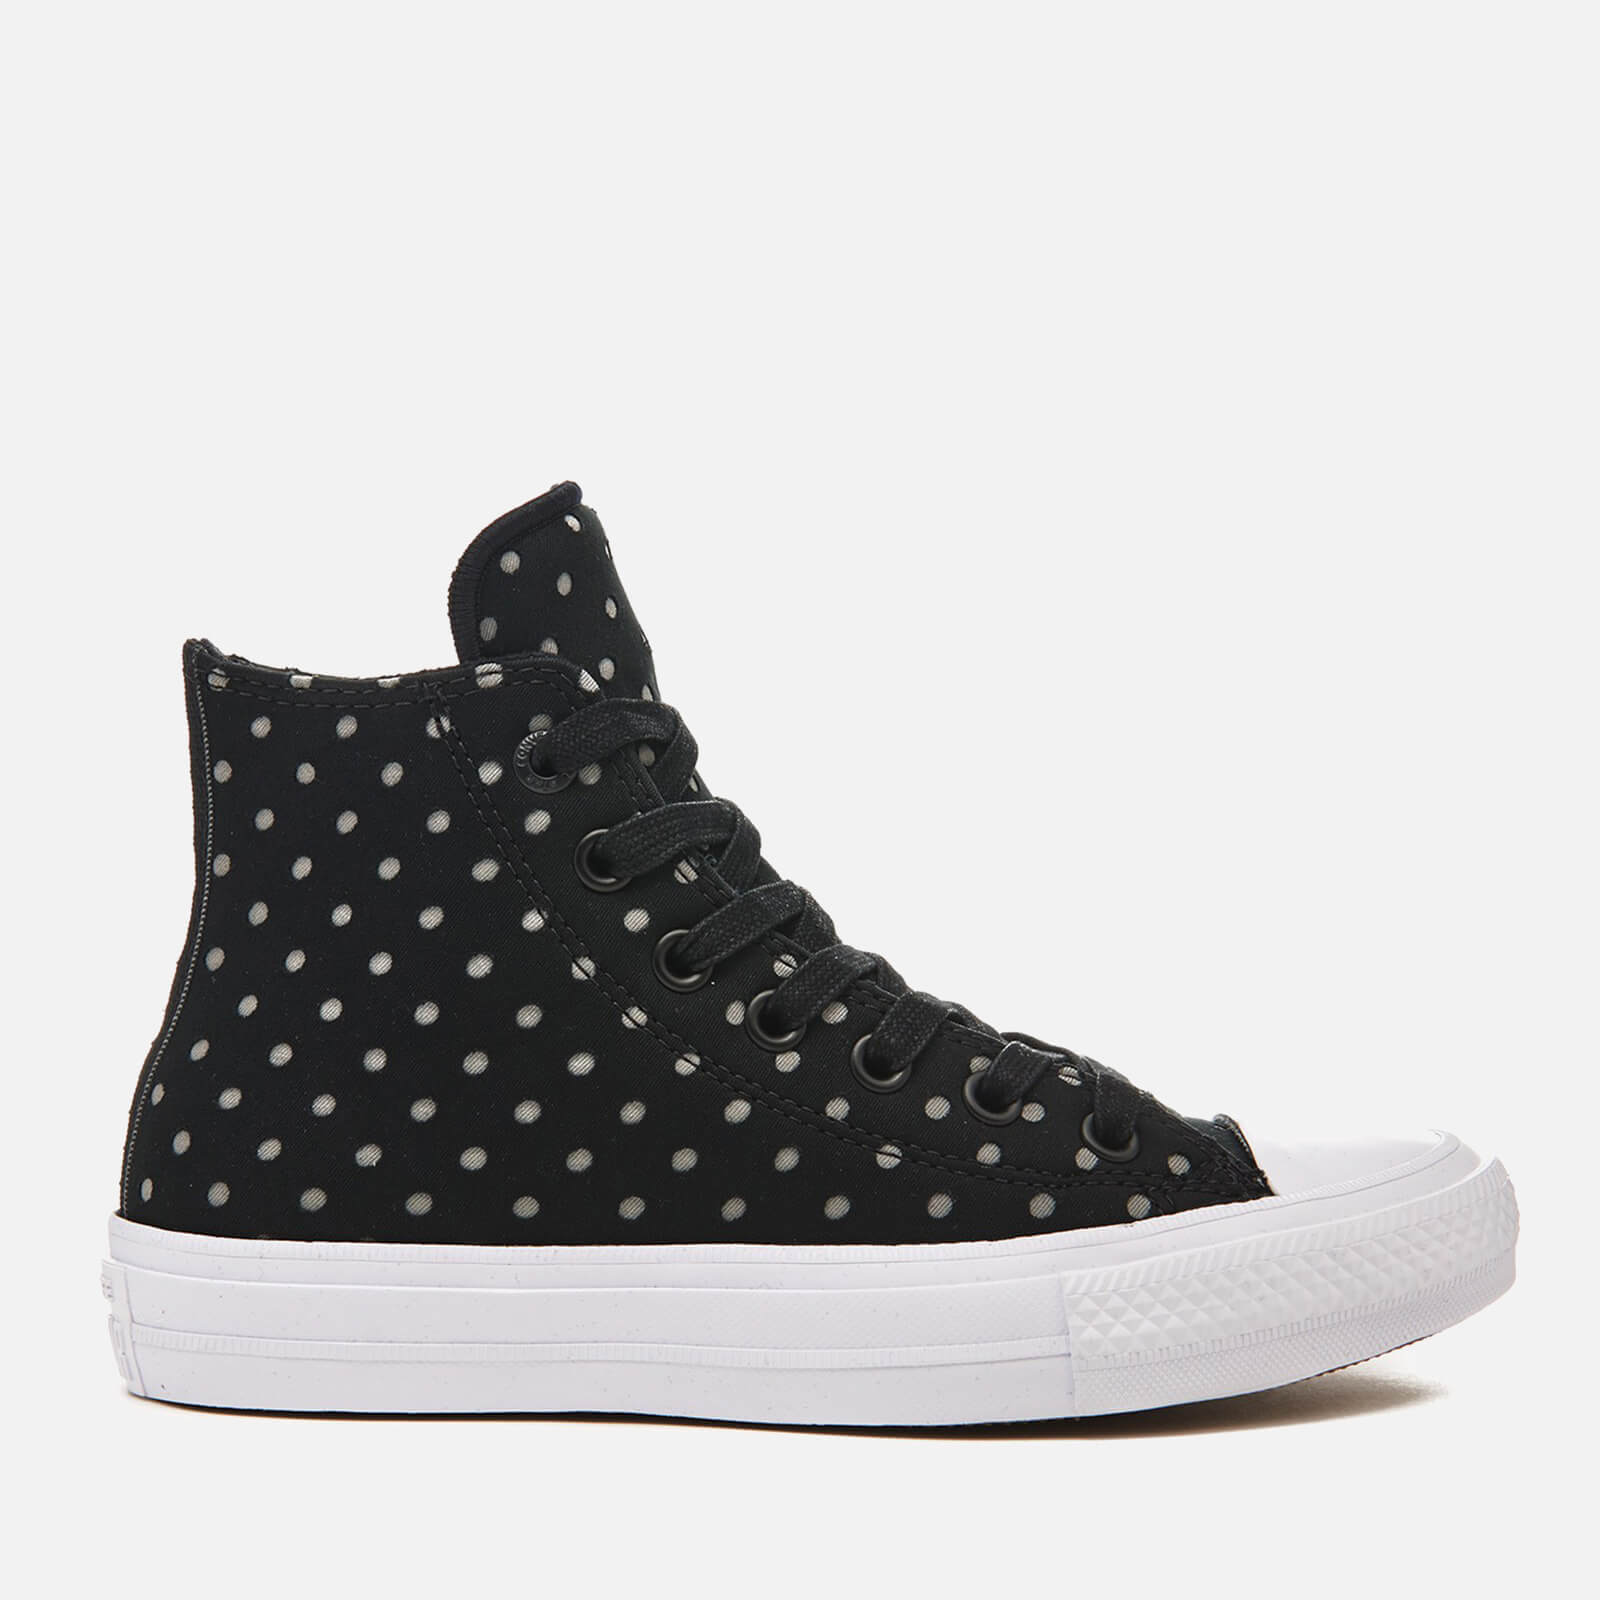 edab620b193d Converse Women s Chuck Taylor All Star II Hi-Top Trainers -  Black Dolphin White - Free UK Delivery over £50